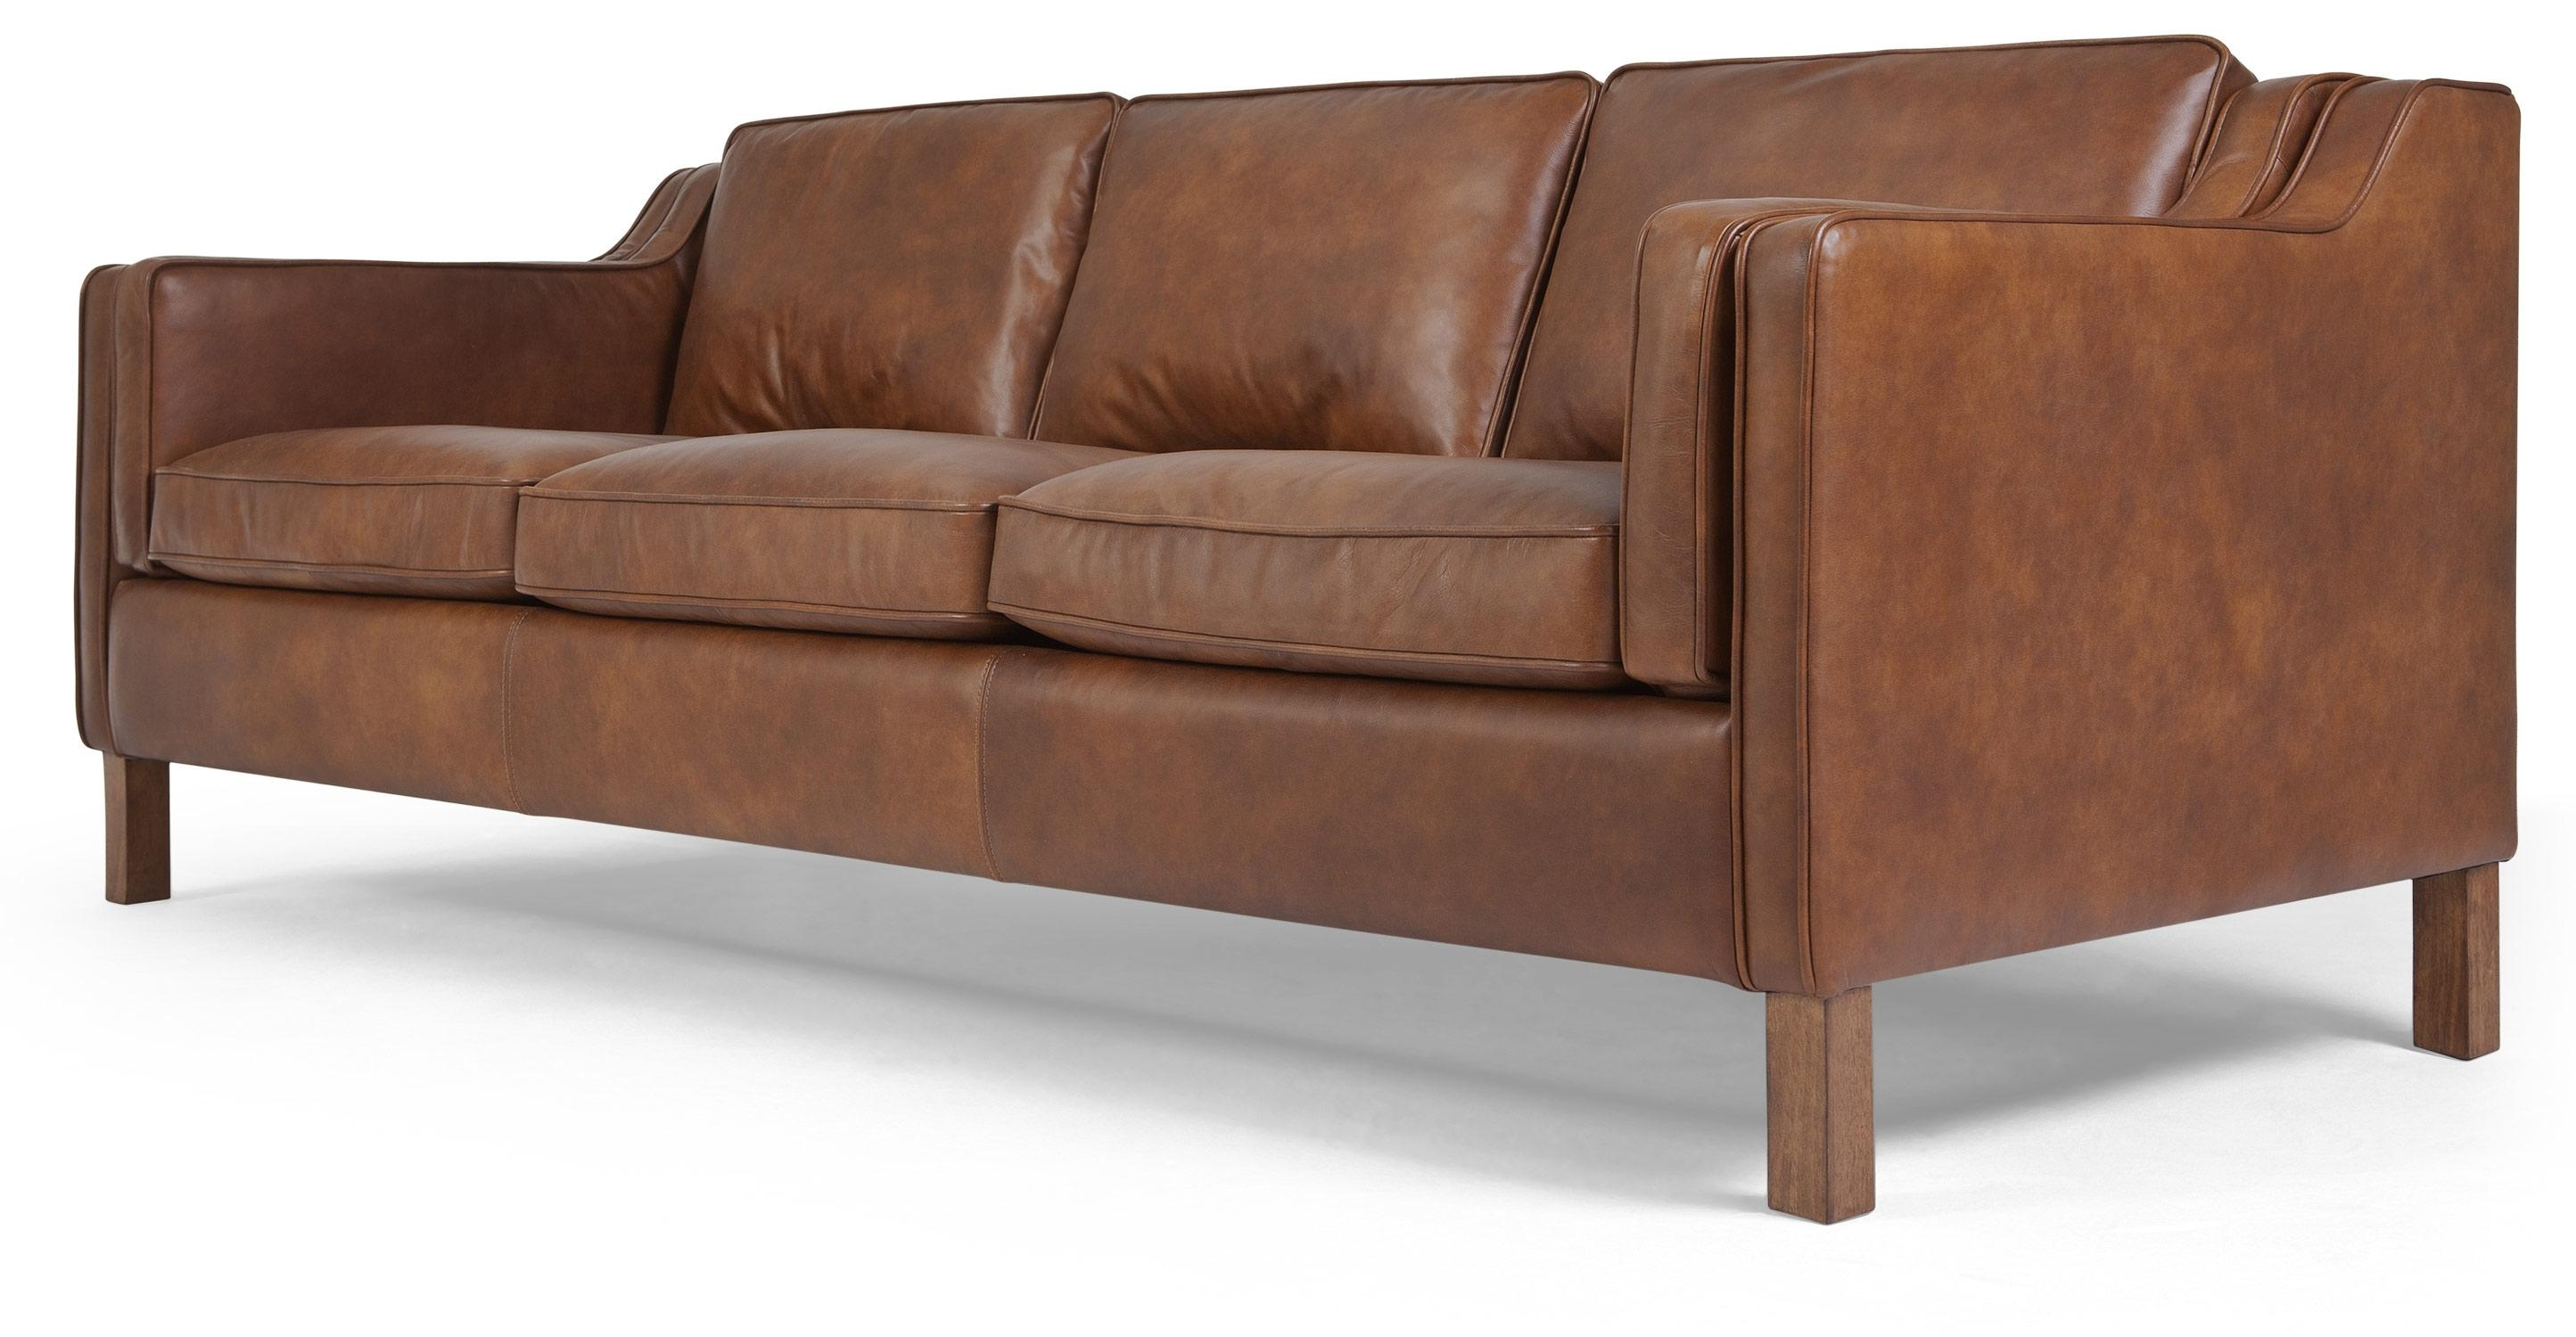 Sofas Center : Leather Lounge Tan Couch Western Light Brownlight In Light Tan Leather Sofas (View 8 of 20)